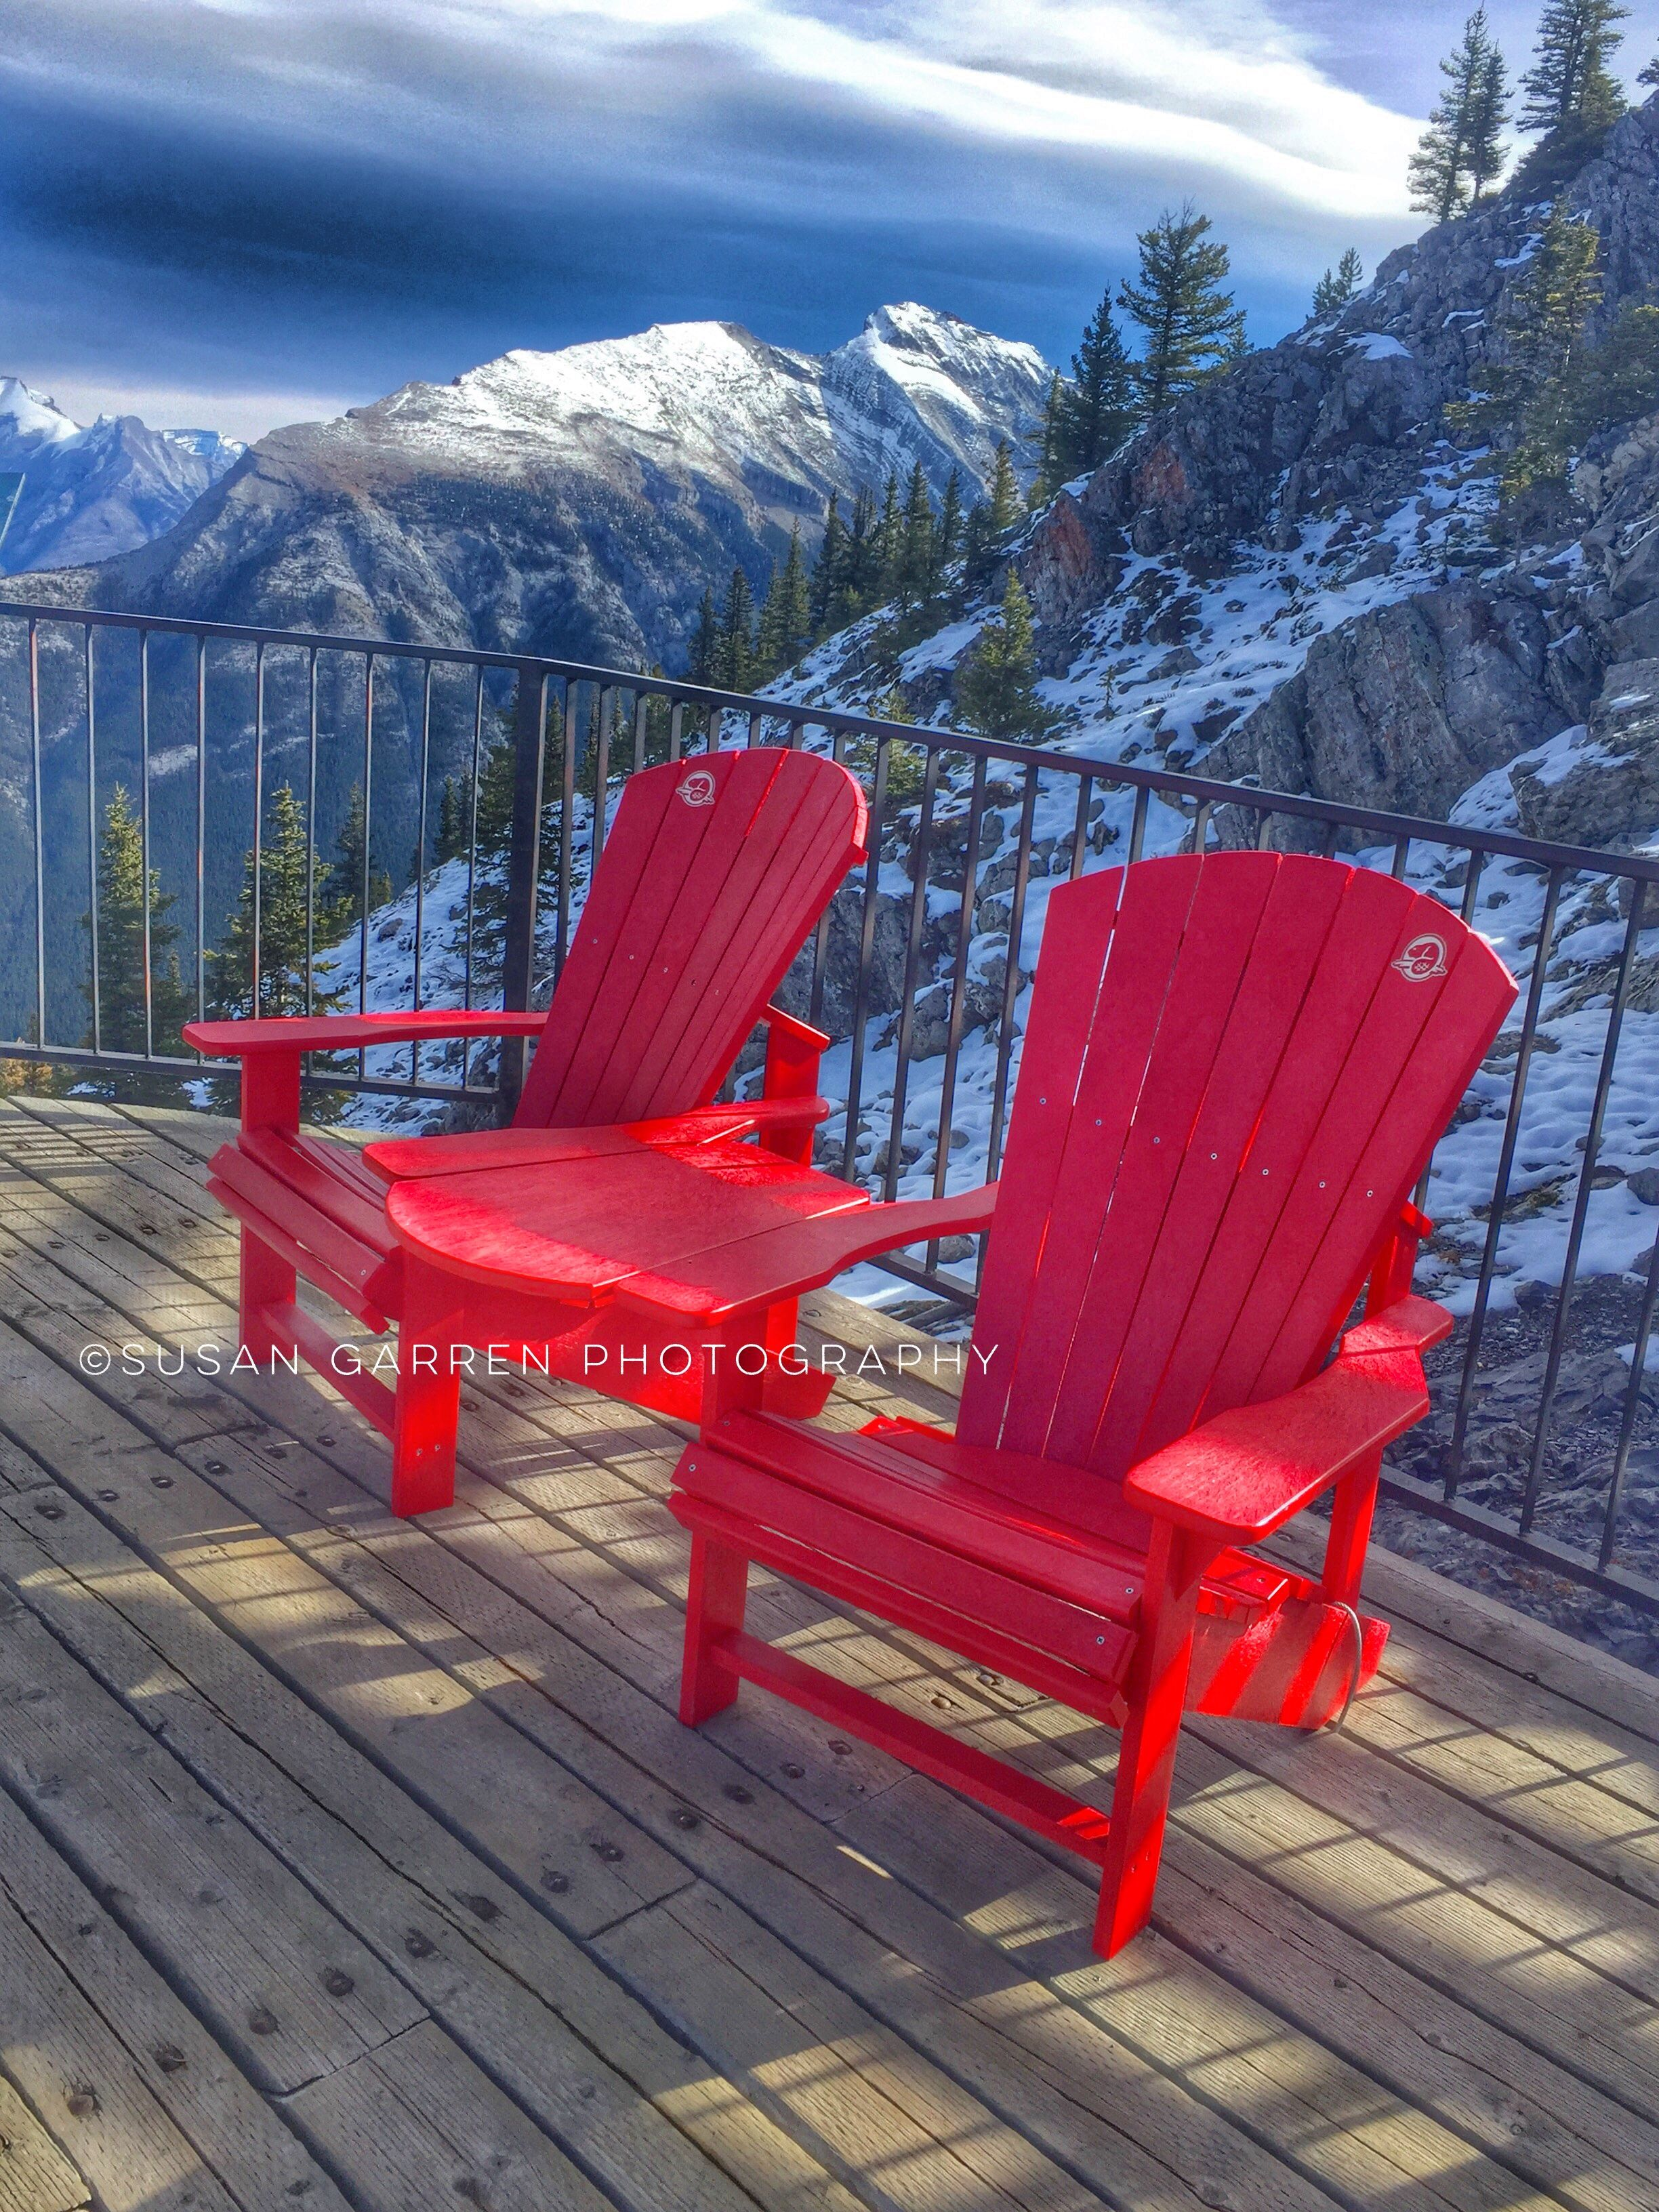 Red chair photography -  Sharethechair Red Chairs Banff National Park Sulphur Mountain Top Of Gondola Ride As Walking